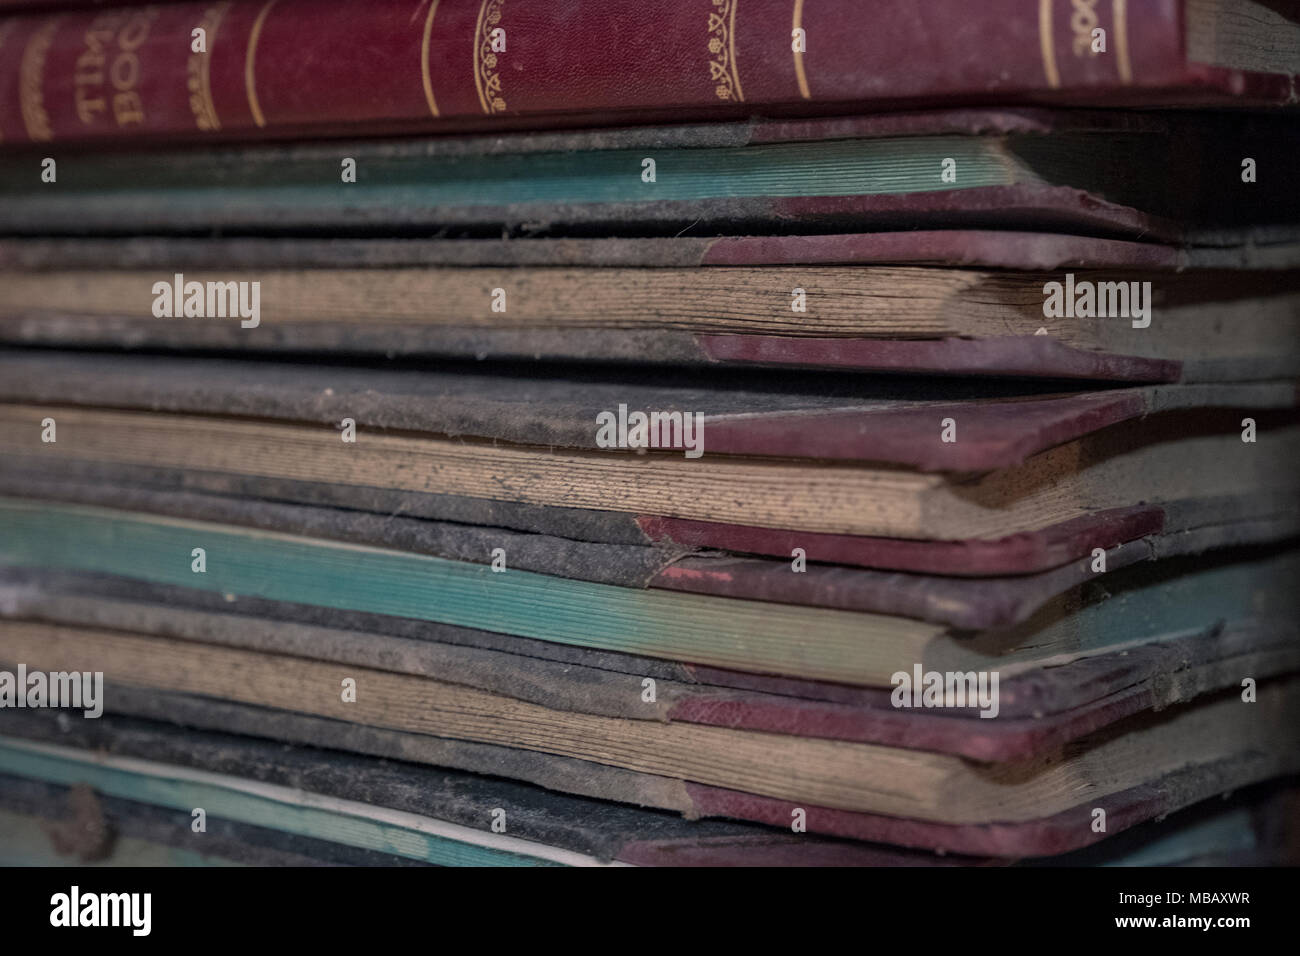 old time ledger books from a long time ago - Stock Image